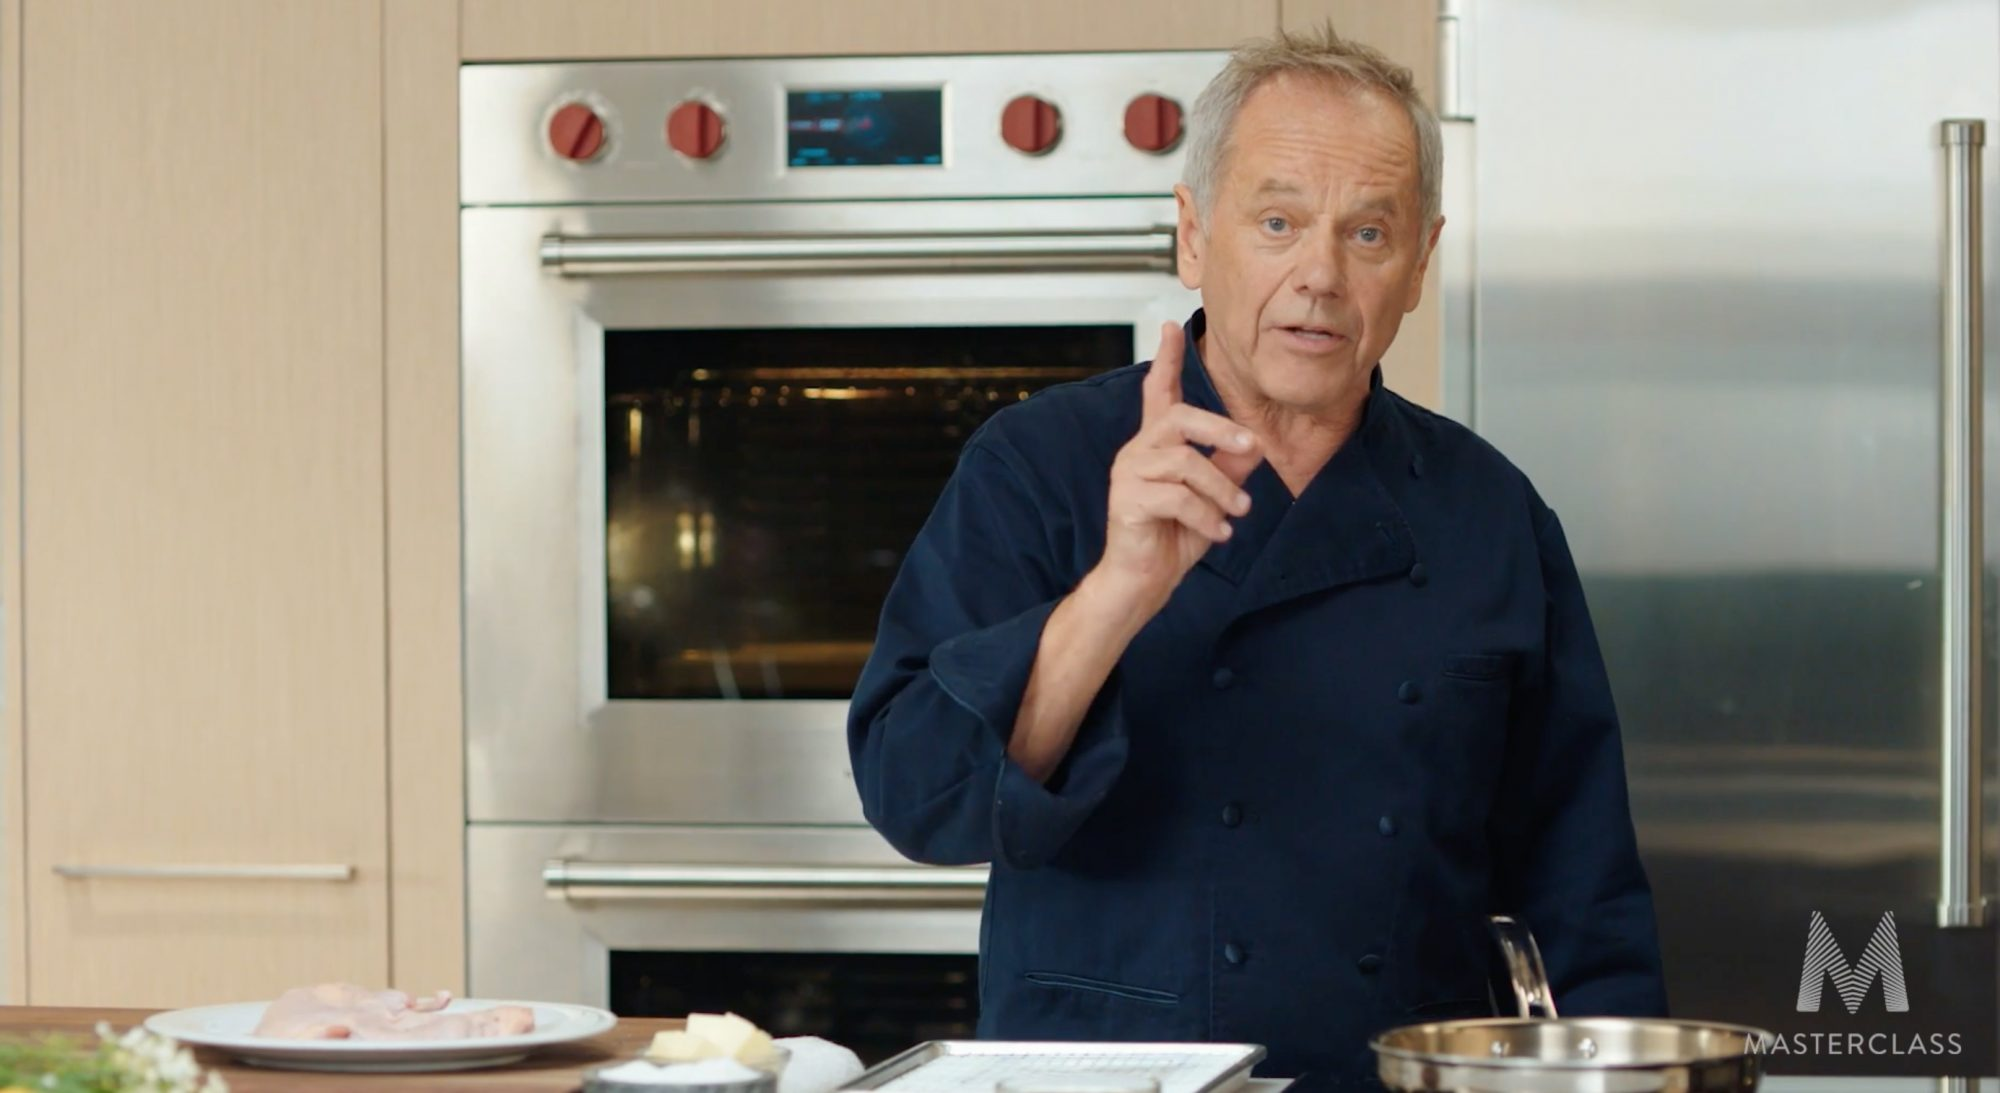 Wolfgang Puck's New MasterClass Will Make You 'Fearless' in the Kitchen